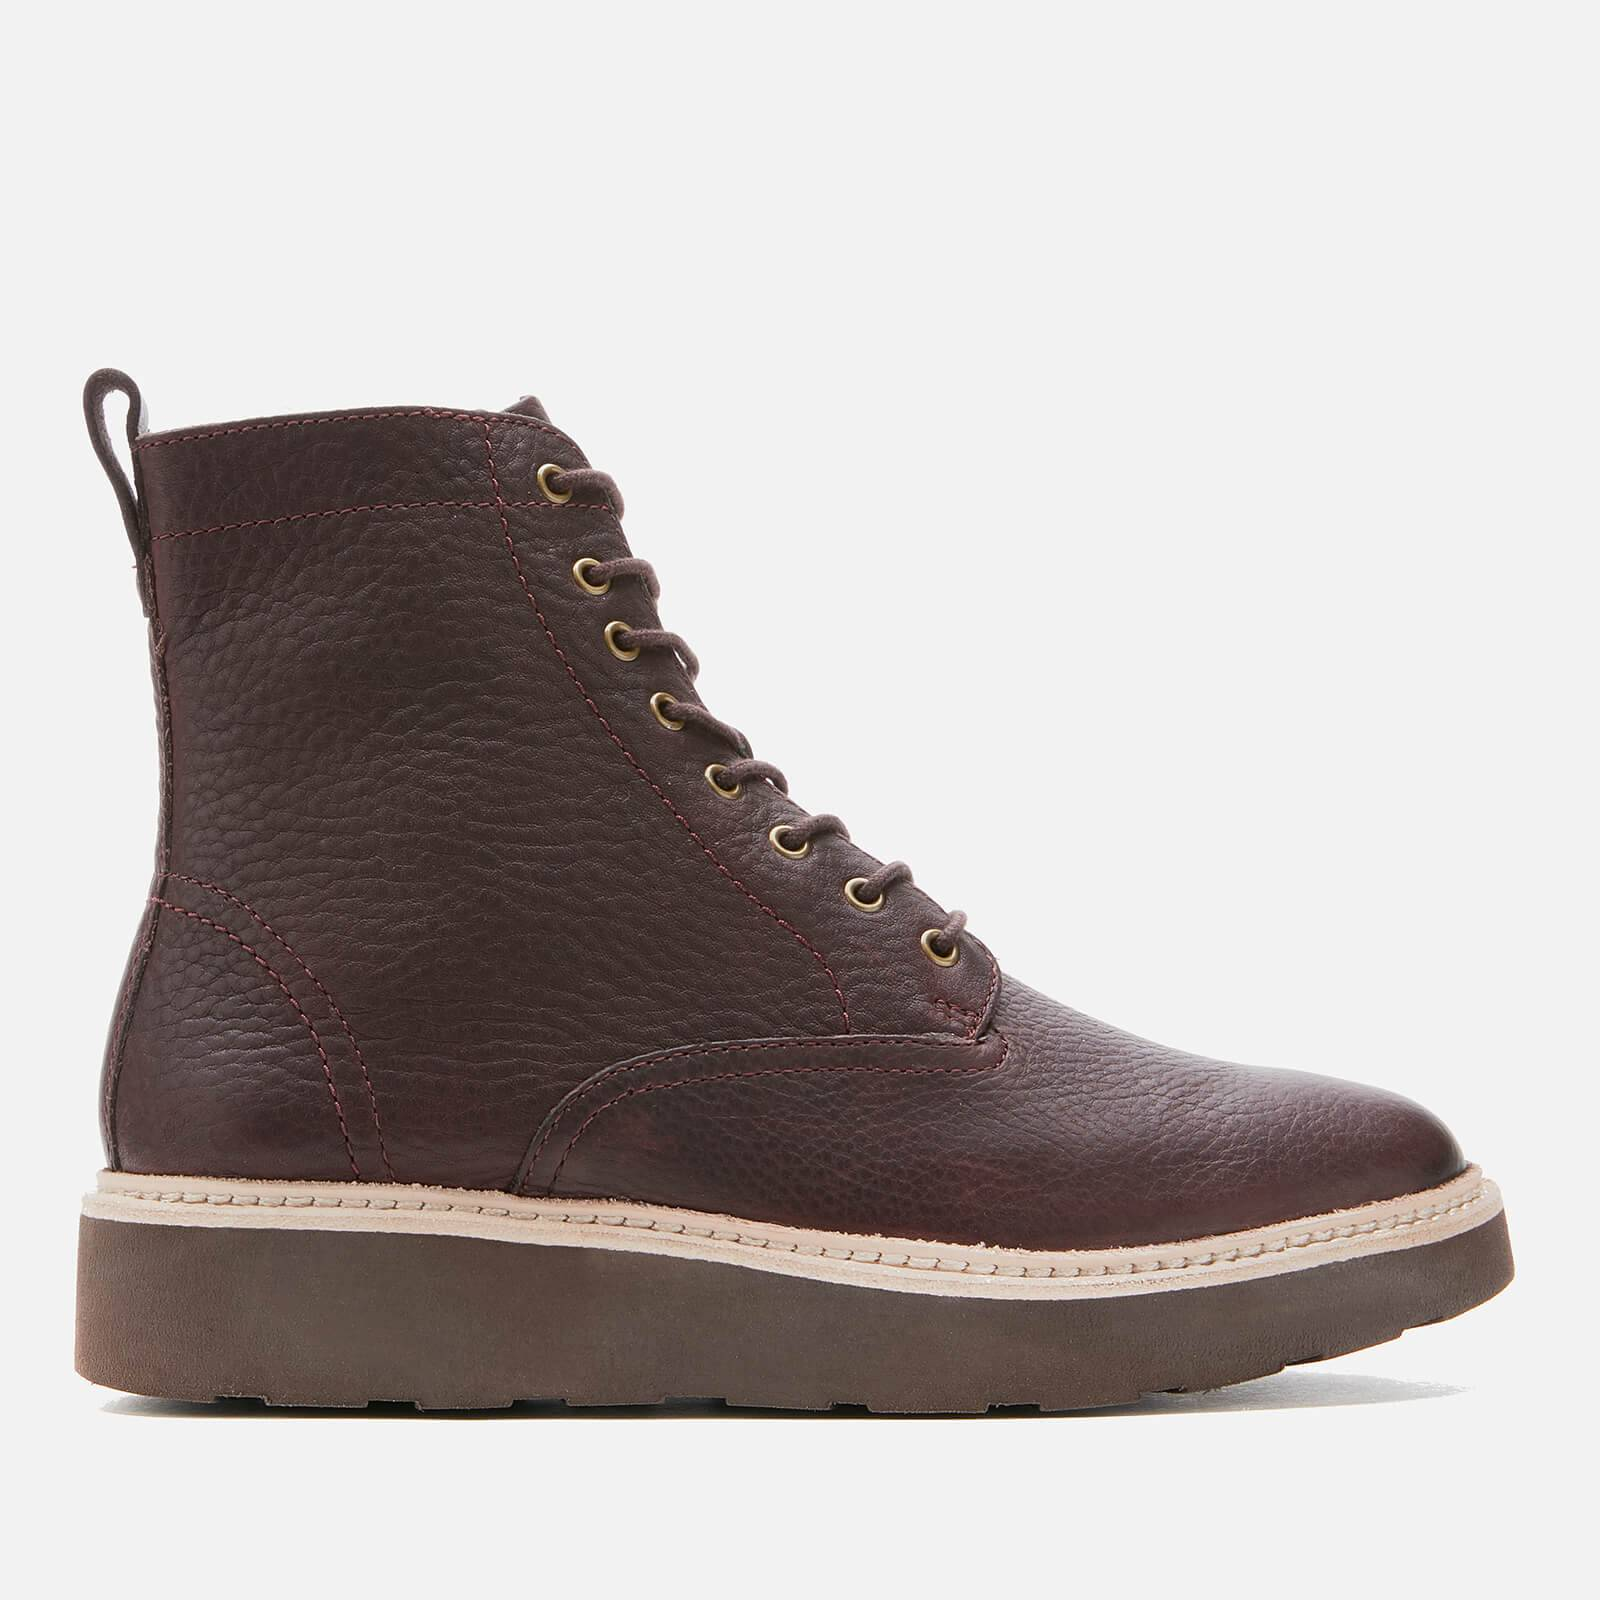 Clarks Women's Trace Pine Leather Lace Up Boots - Burgundy - UK 5